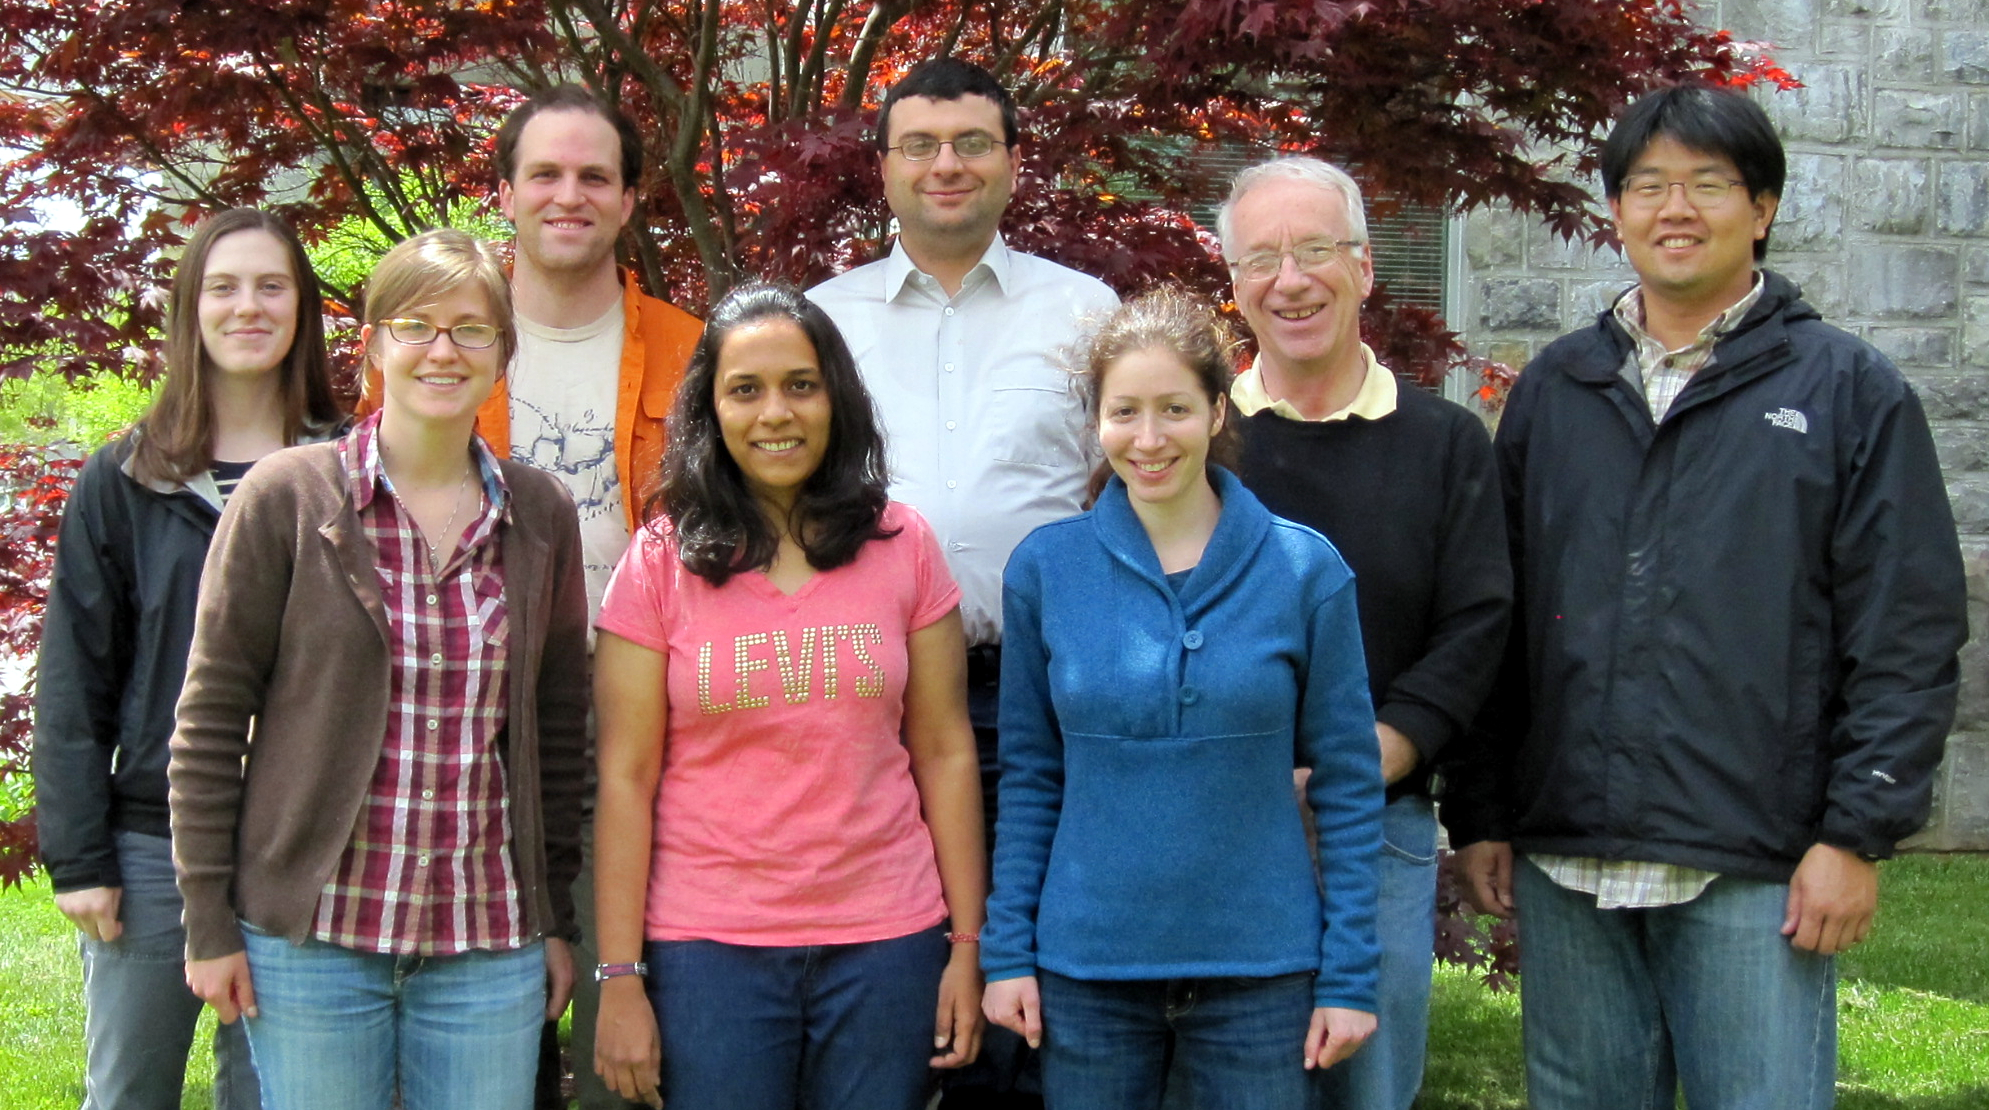 The seven team members and their faculty advisor.